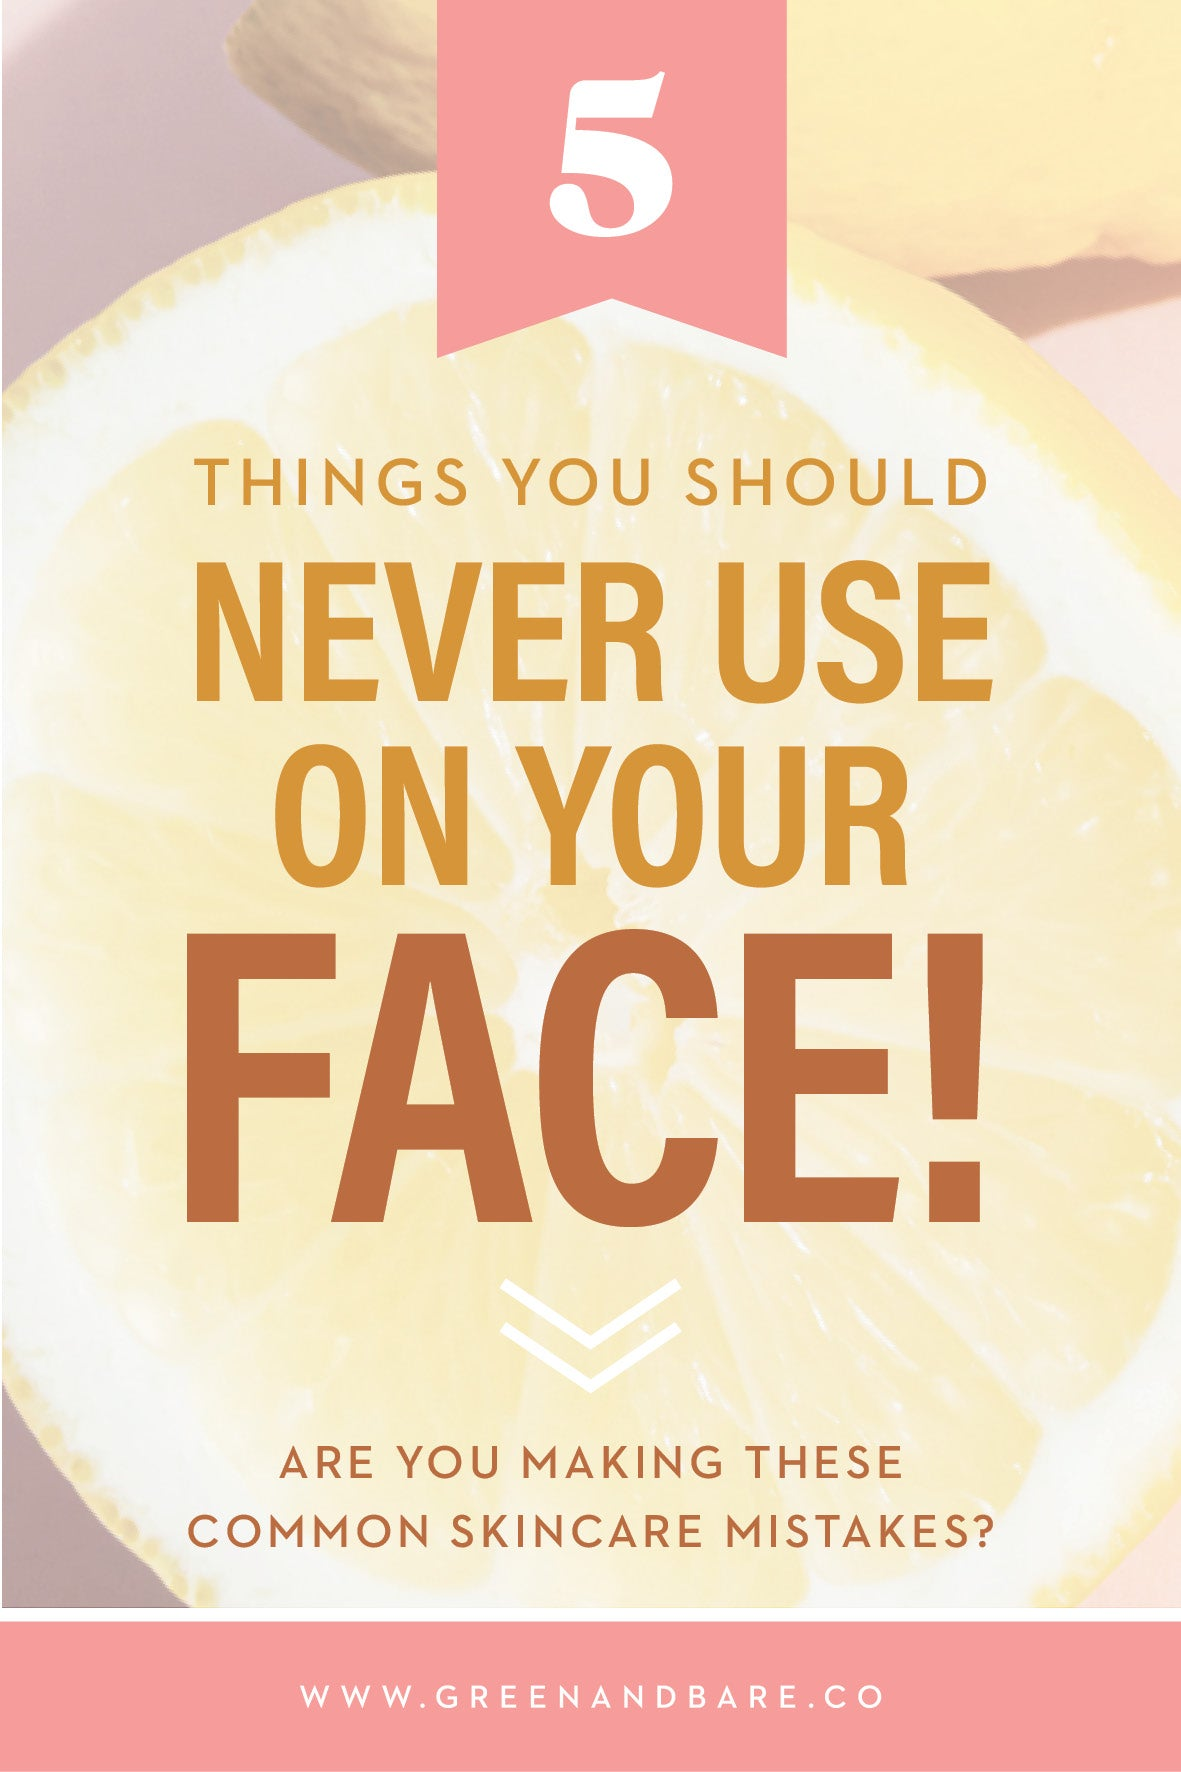 5 Things You Should Never Use On Your Face